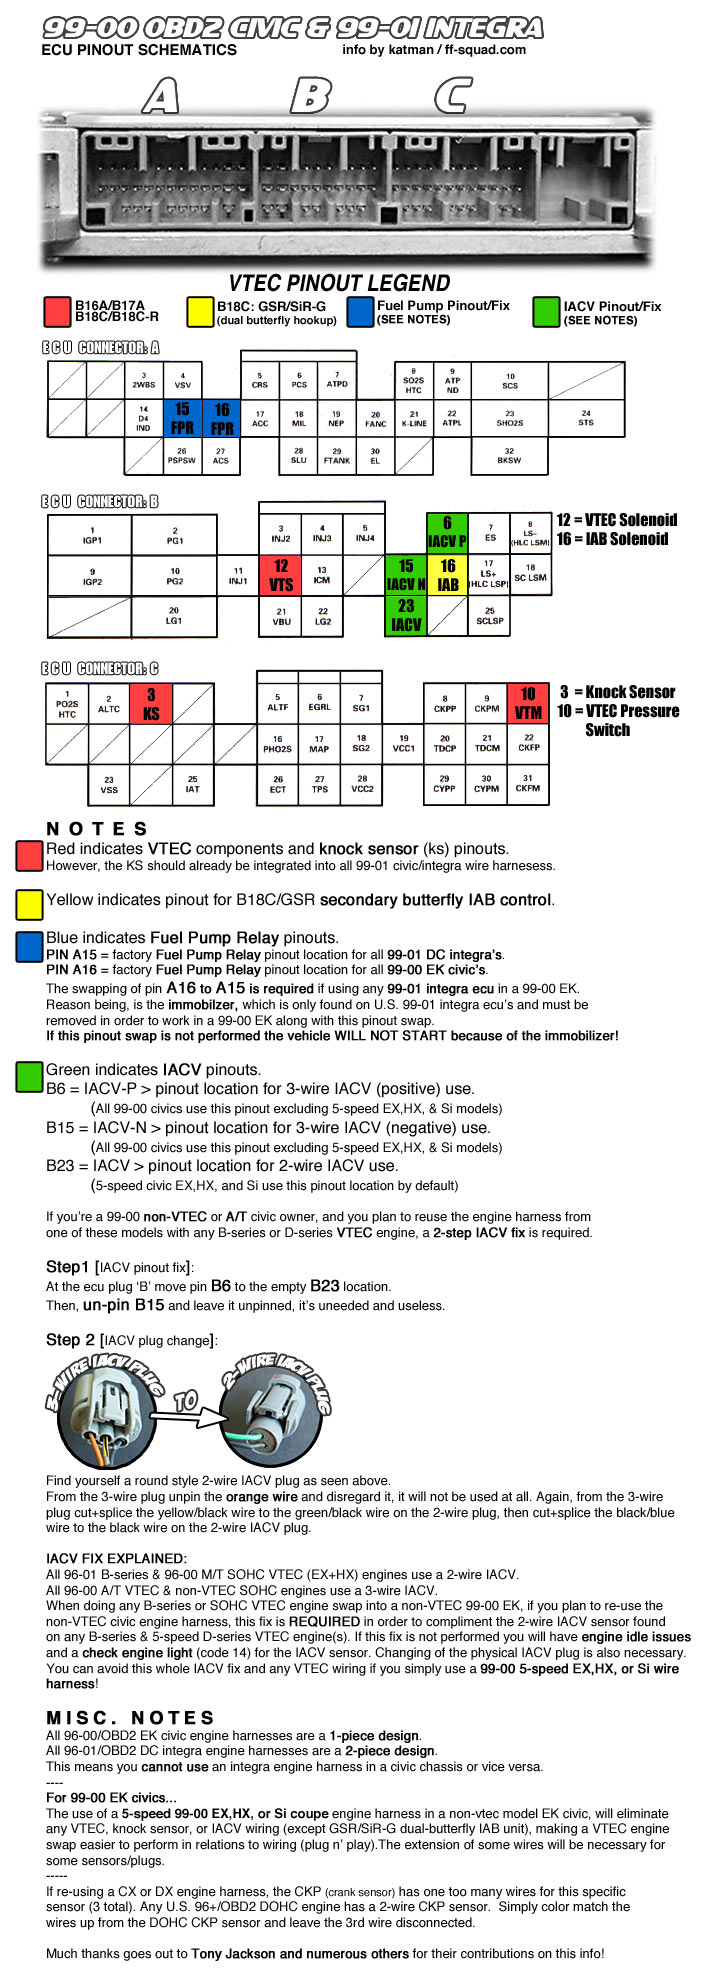 obd2 wiring diagram obd2-obd1 wiring harness diagram - tampa racing 2003 trailblazer obd2 wiring diagram